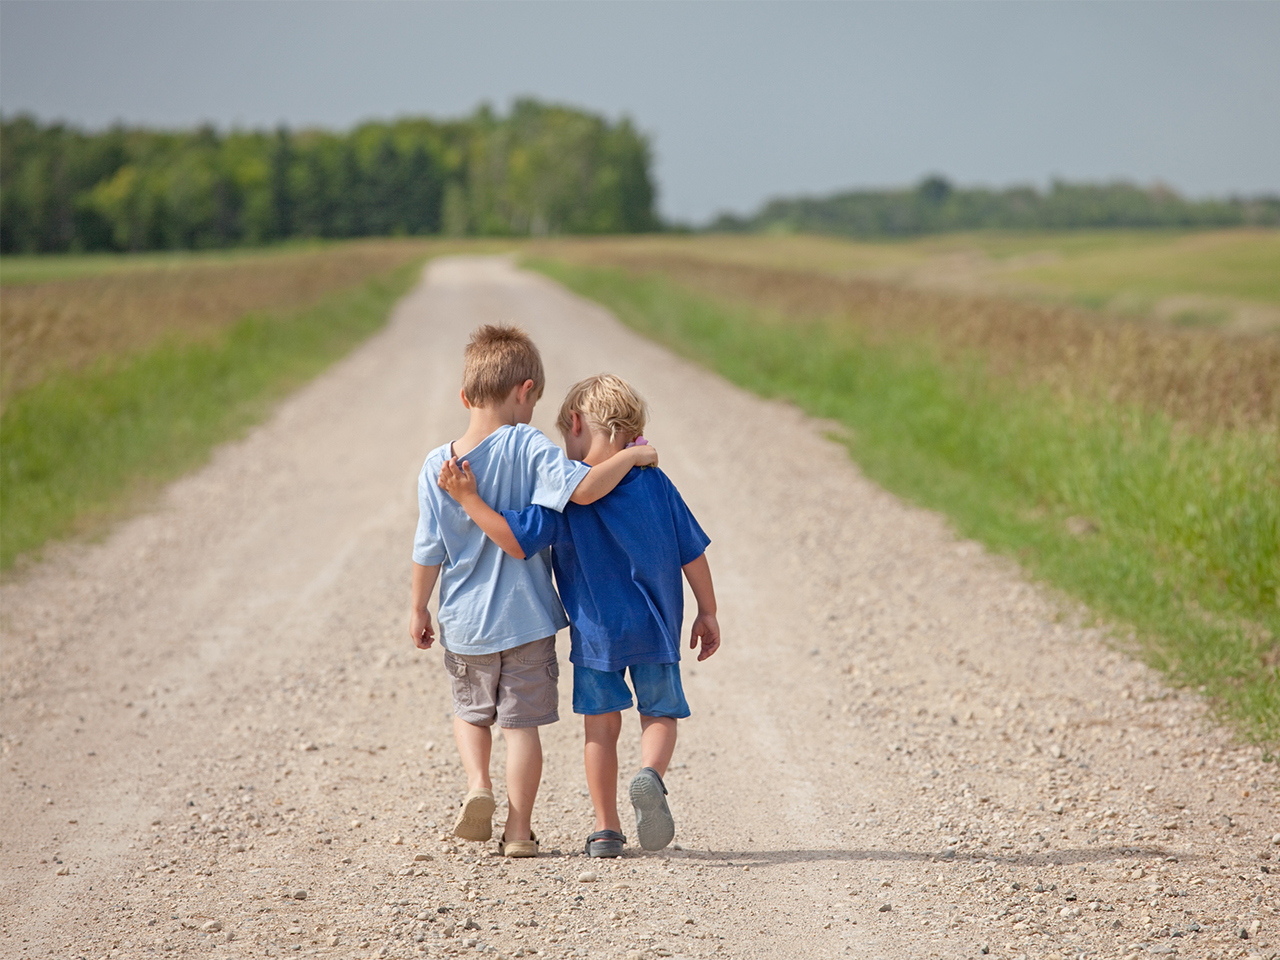 Two little boys walk down a country road with their arms around each other